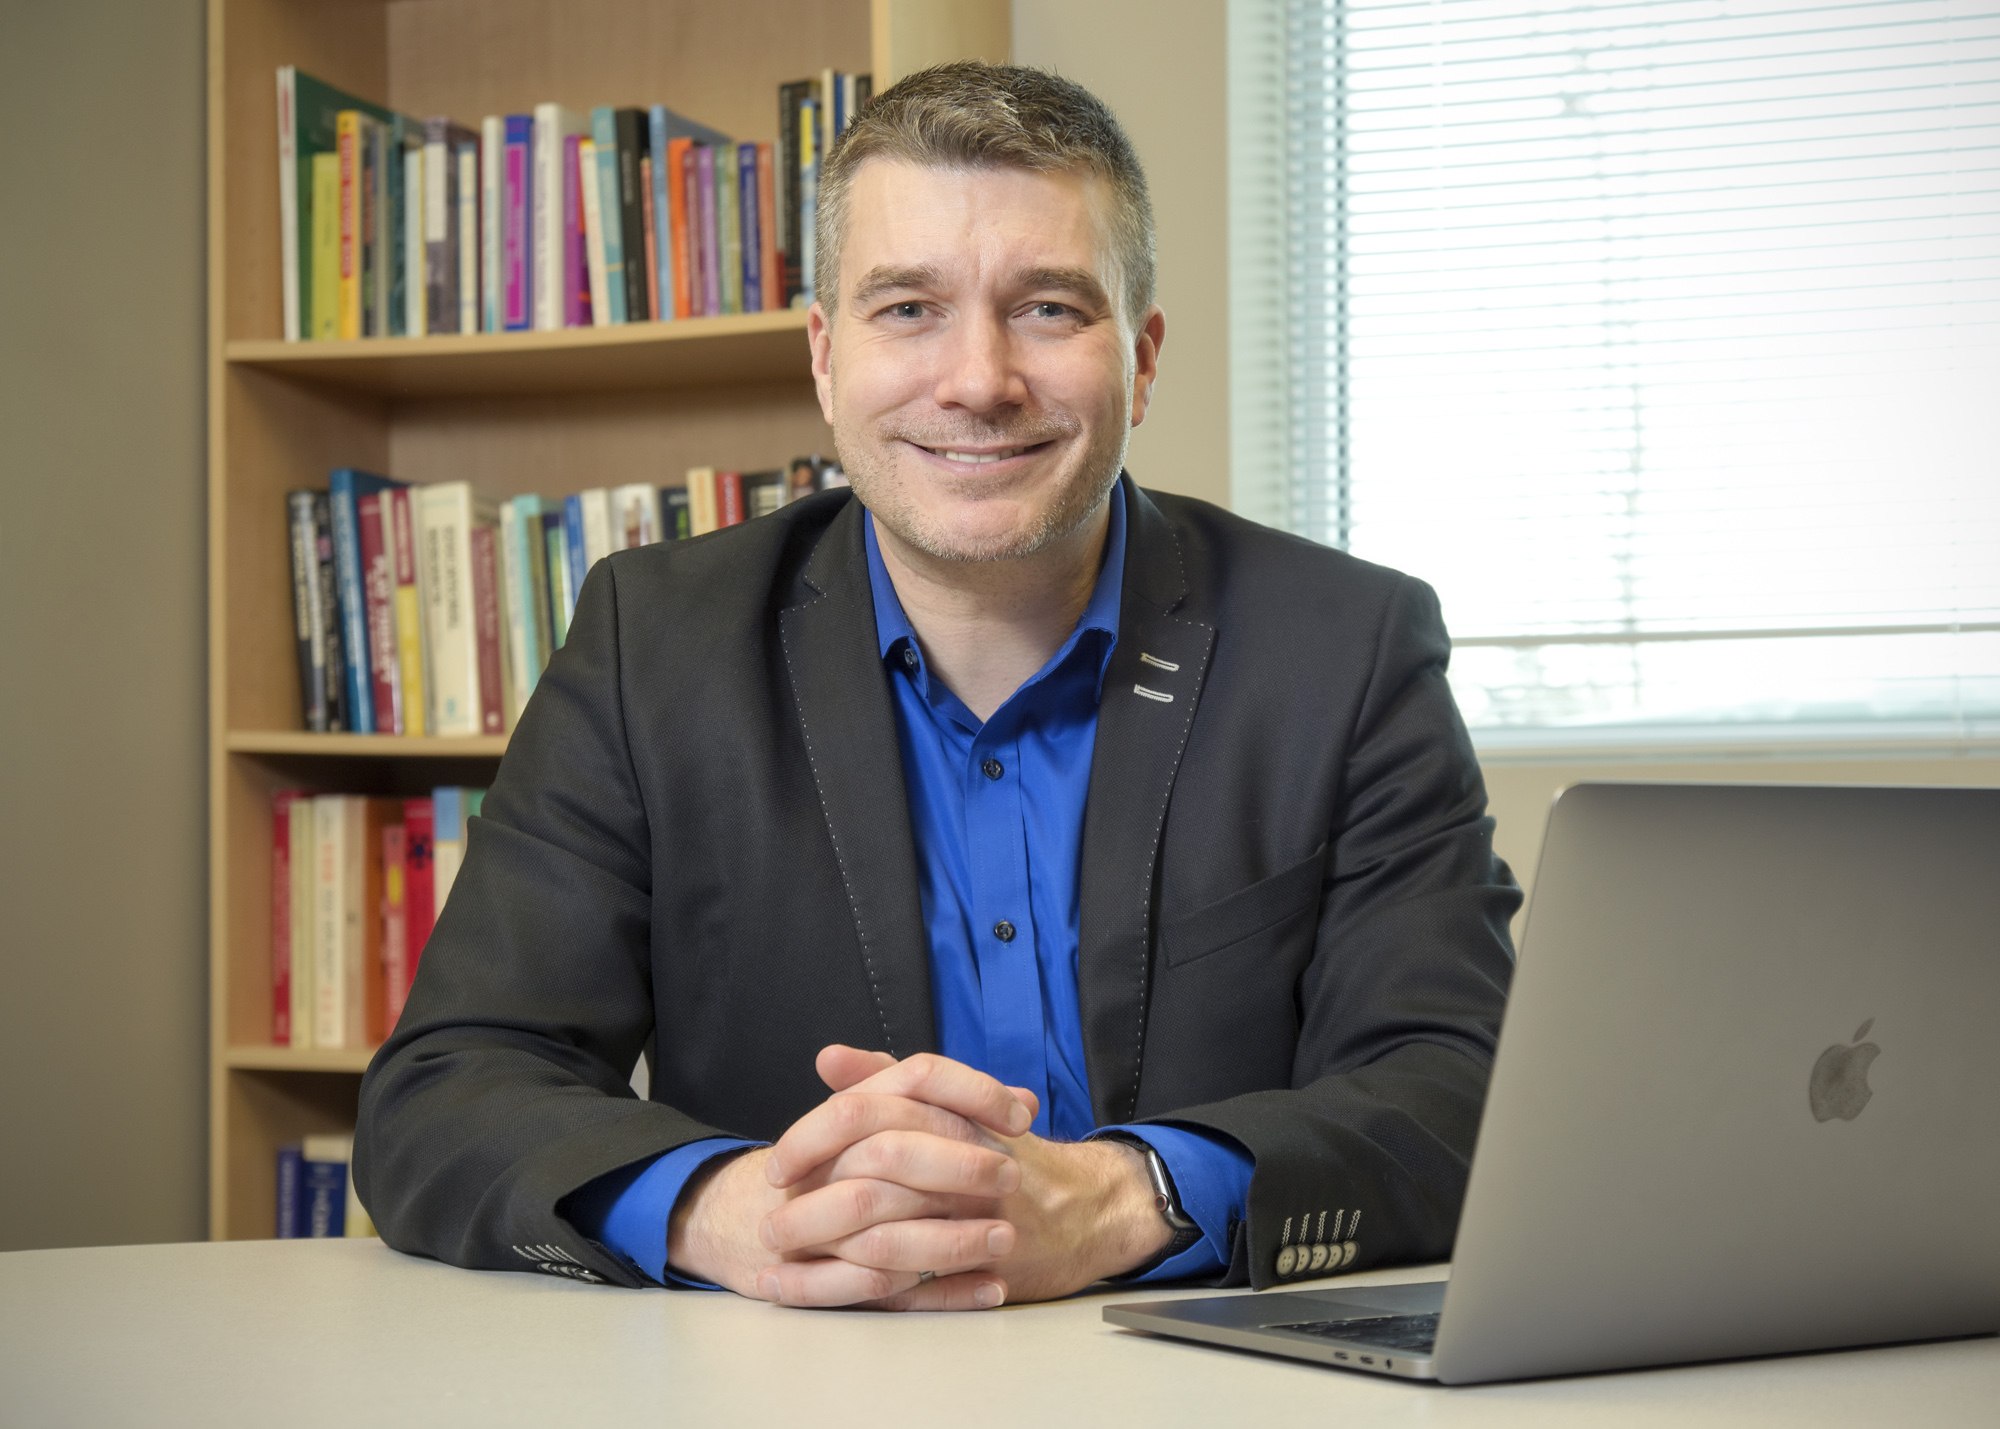 U of R psychology professor R. Nicholas Carleton was named the 2020 winner of the Royal-Mach-Gaensslen Prize for Mental Health Research. (Photo by Trevor Hopkin)